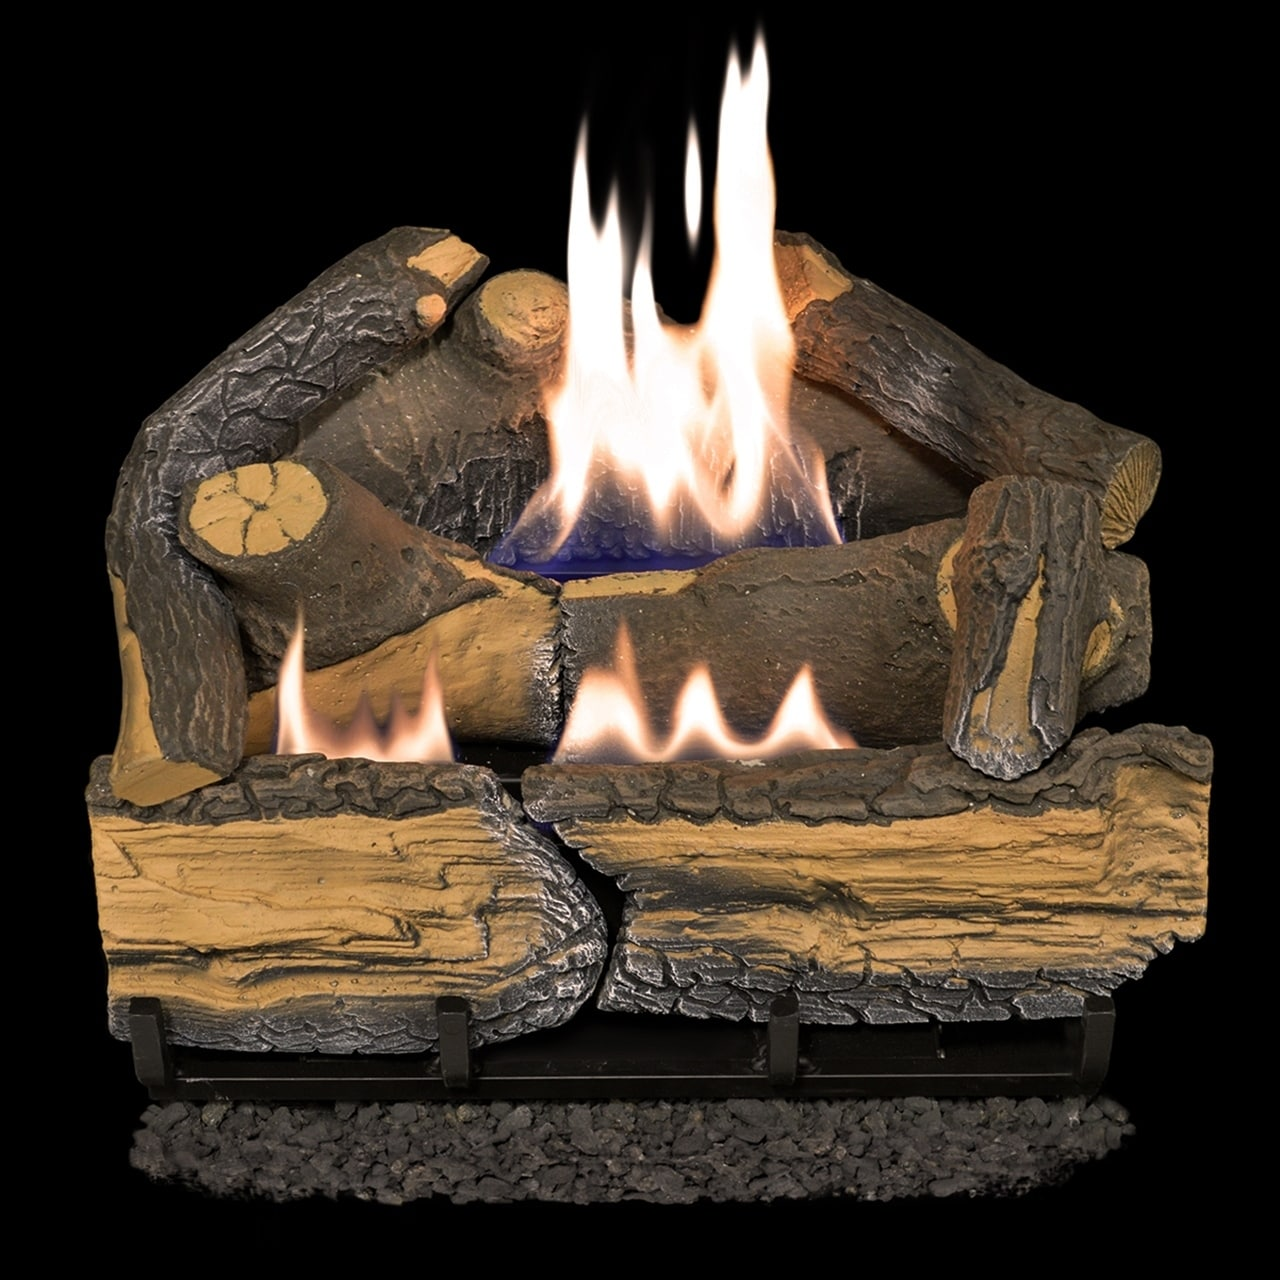 How Much Do Gas Fireplace Logs Cost Cedar Ridge Hearth Recon 18 In 30 000 Btu Dual Burner Ventless Gas Fireplace Logs With Thermostat R Crhd18t